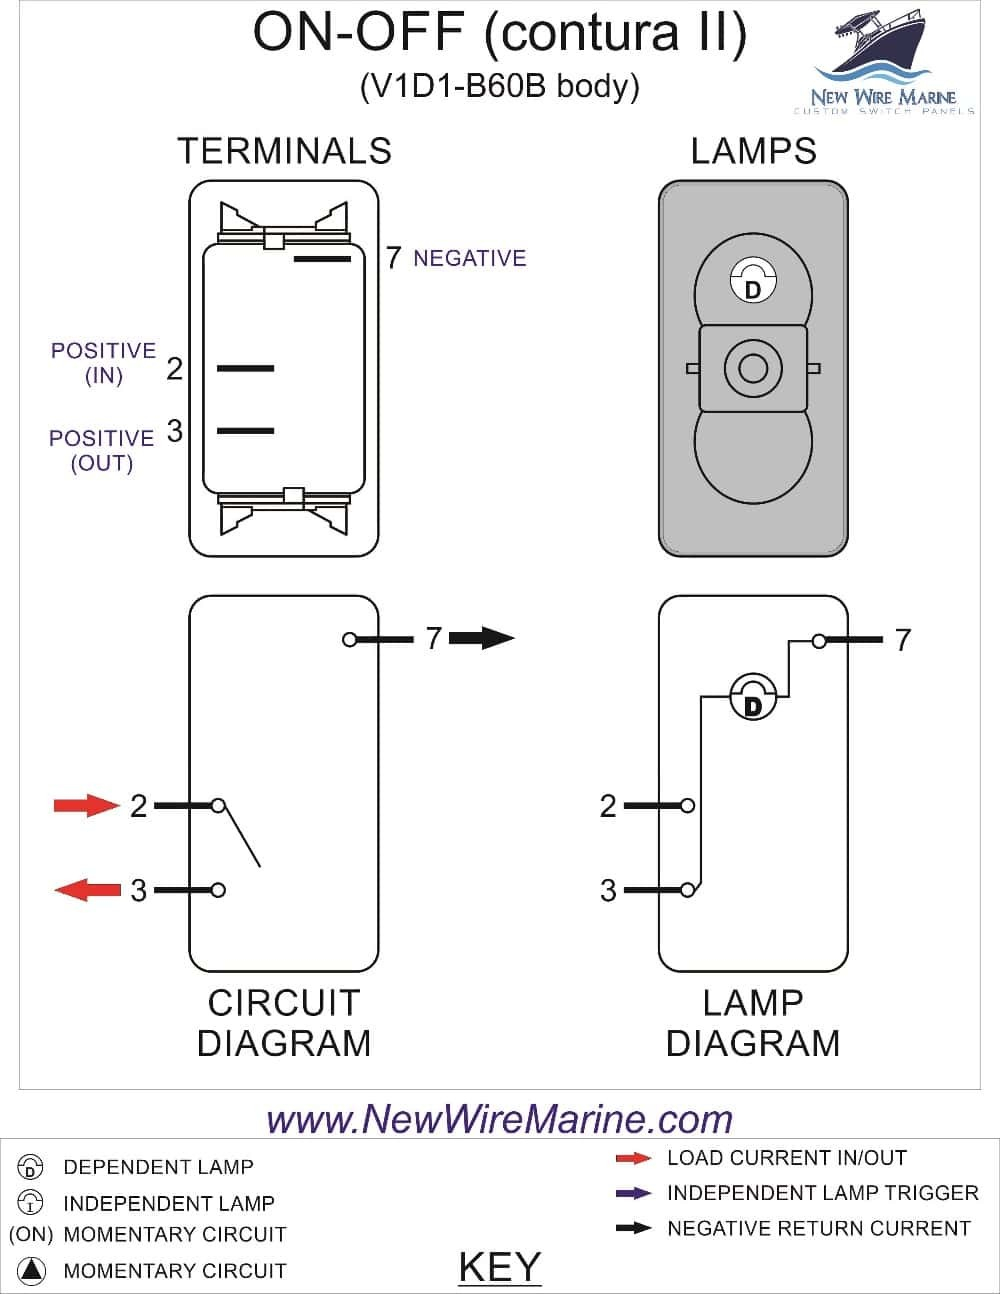 carling toggle switch wiring diagram Download-Carling Toggle Switch Wiring Diagram Fitfathers Me Beautiful 11-k